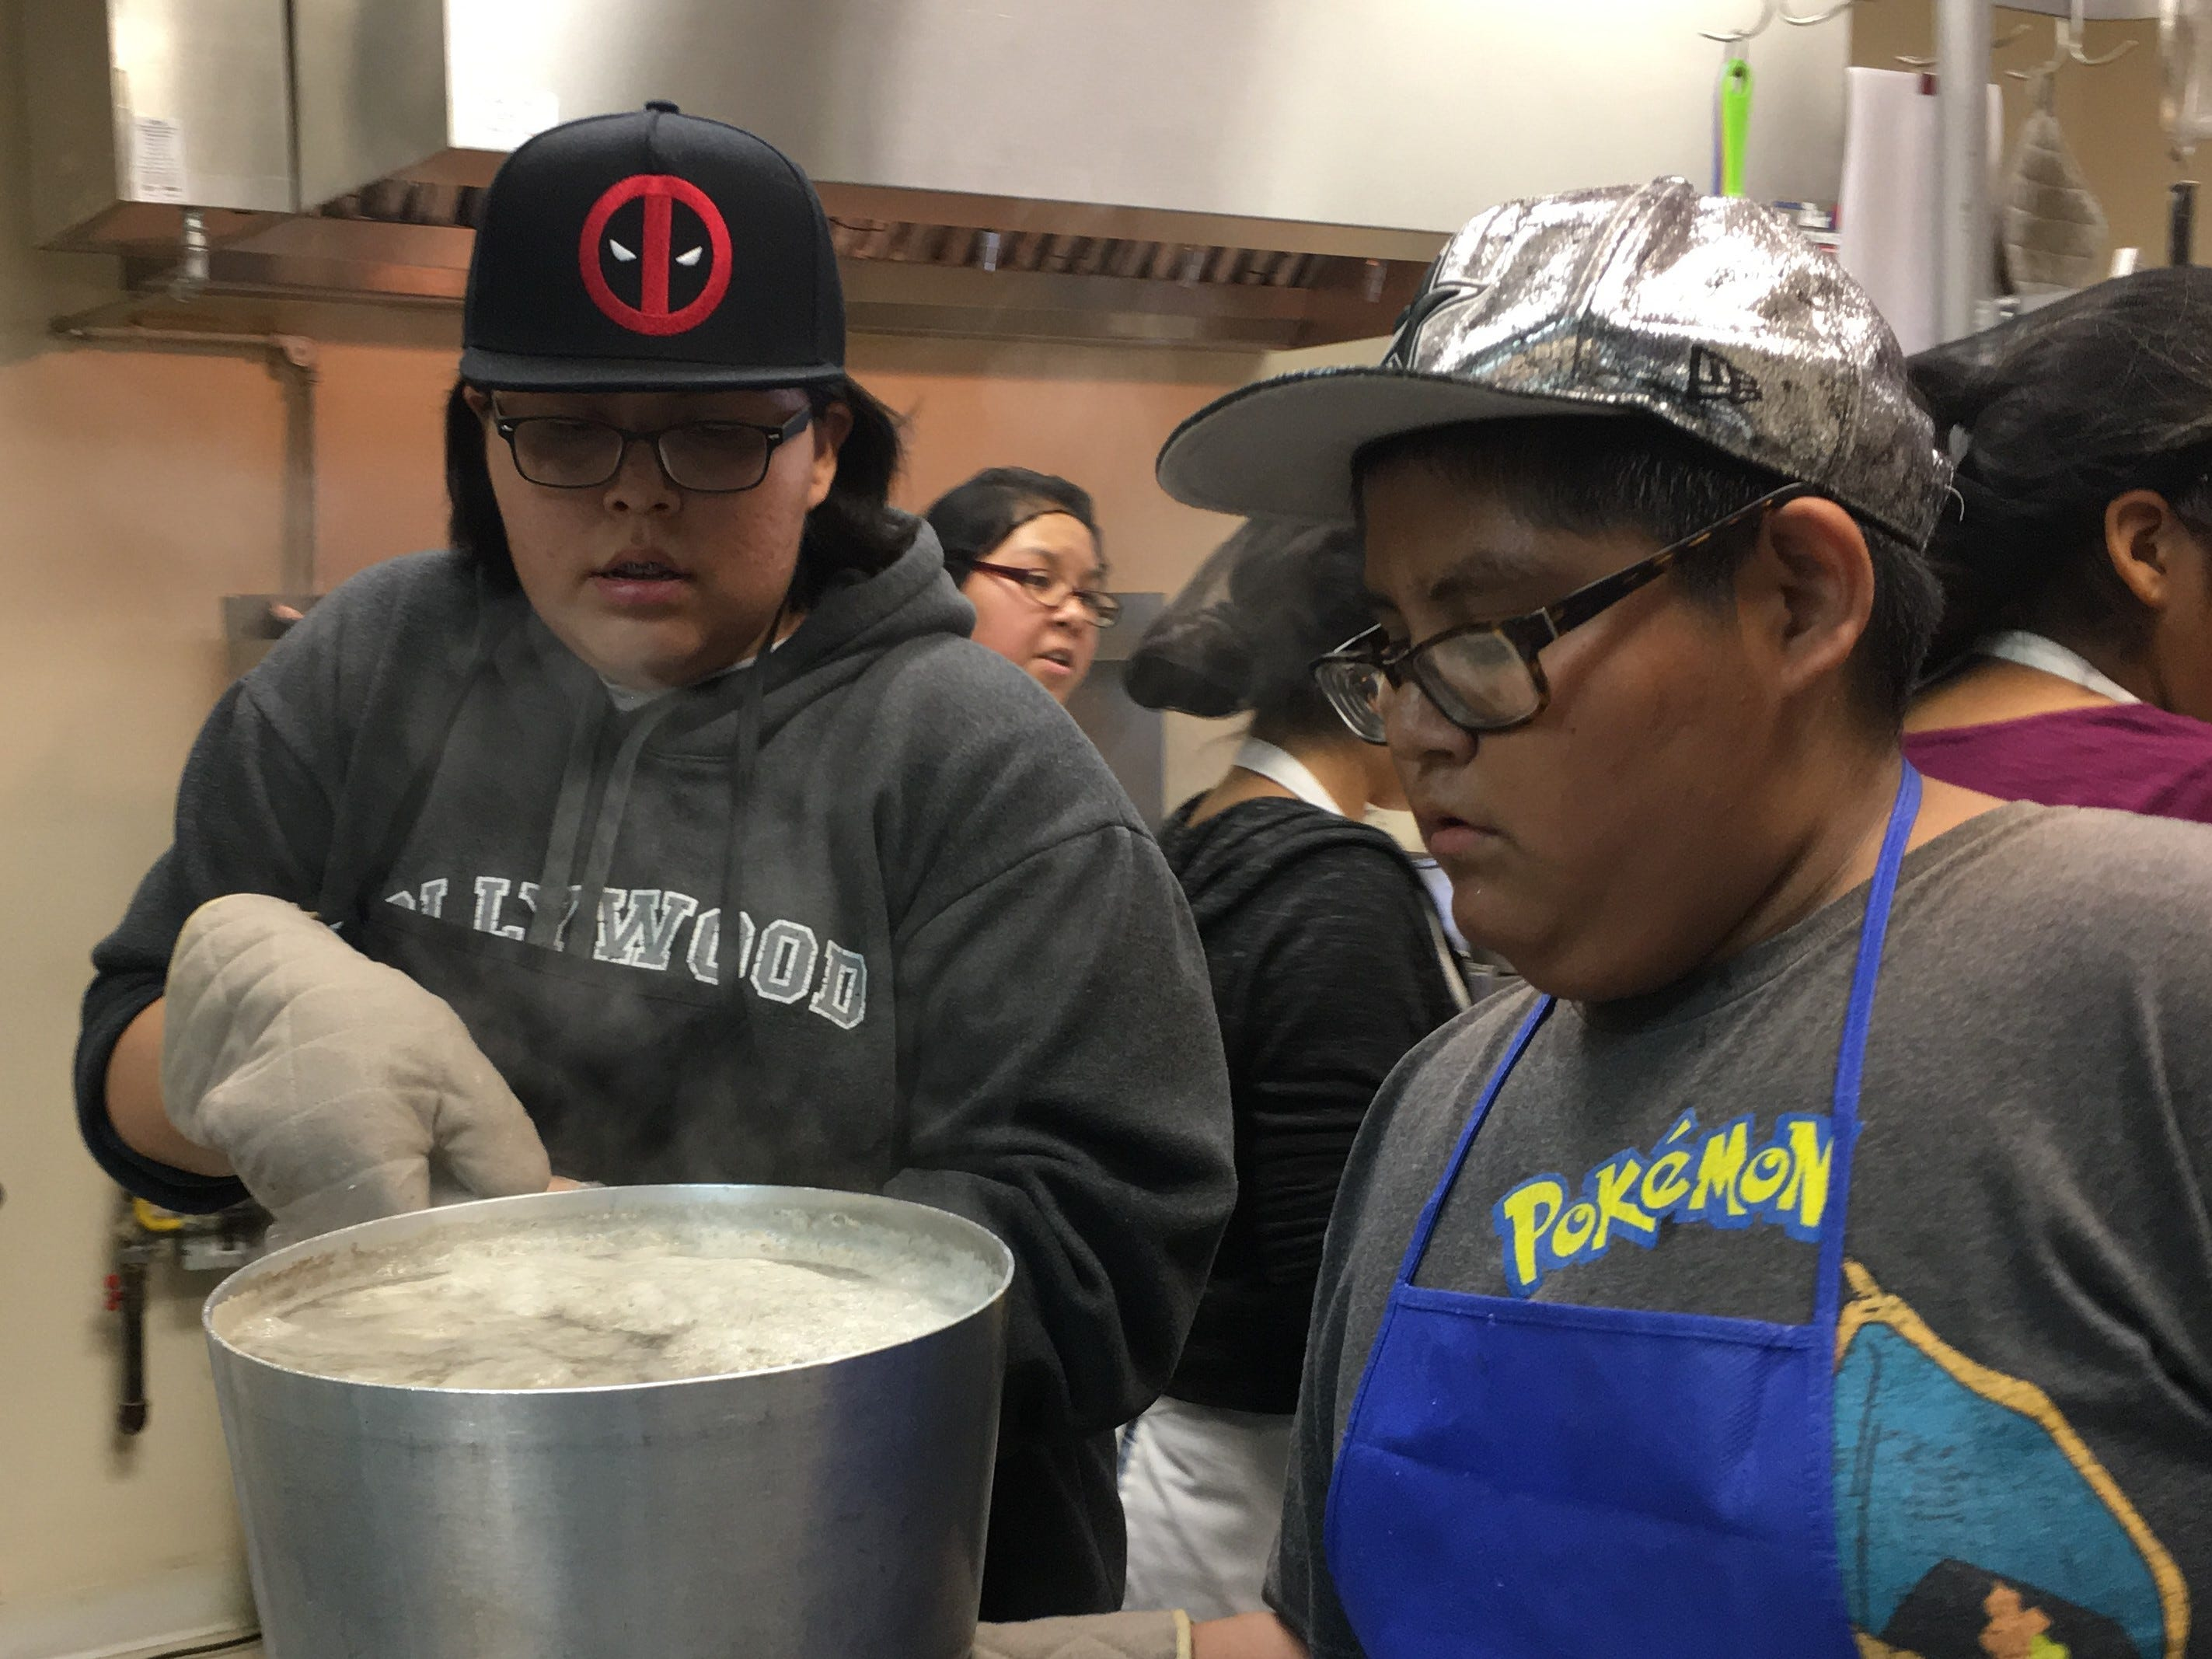 Eighth-grader Felicia Allan, left, and seventh-grader Nathaniel Bahe carry a pot of boiled potatoes on Wednesday at the Shiprock Senior Citizen Center in Shiprock.